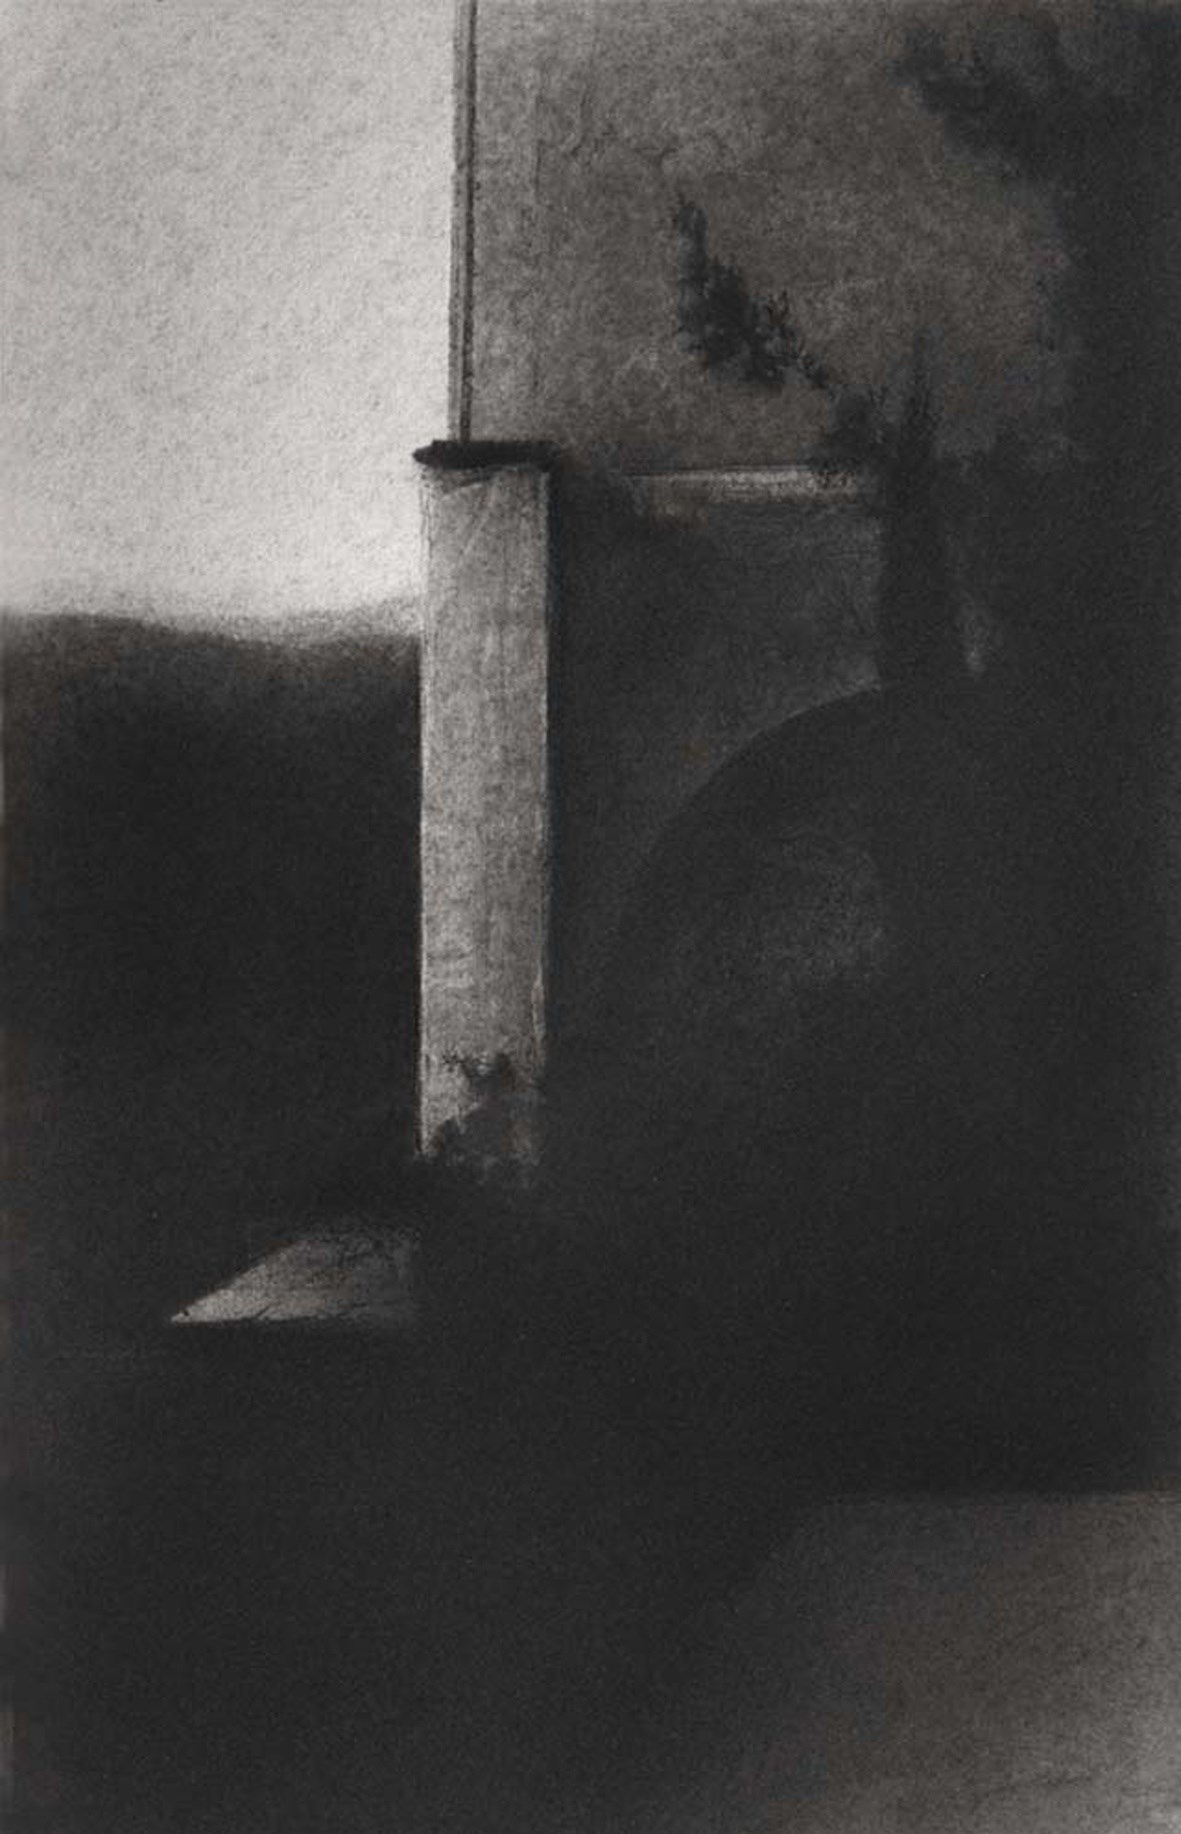 THE HIDDEN TIME III, original Architecture Pencil Drawing and Illustration by José María Díez